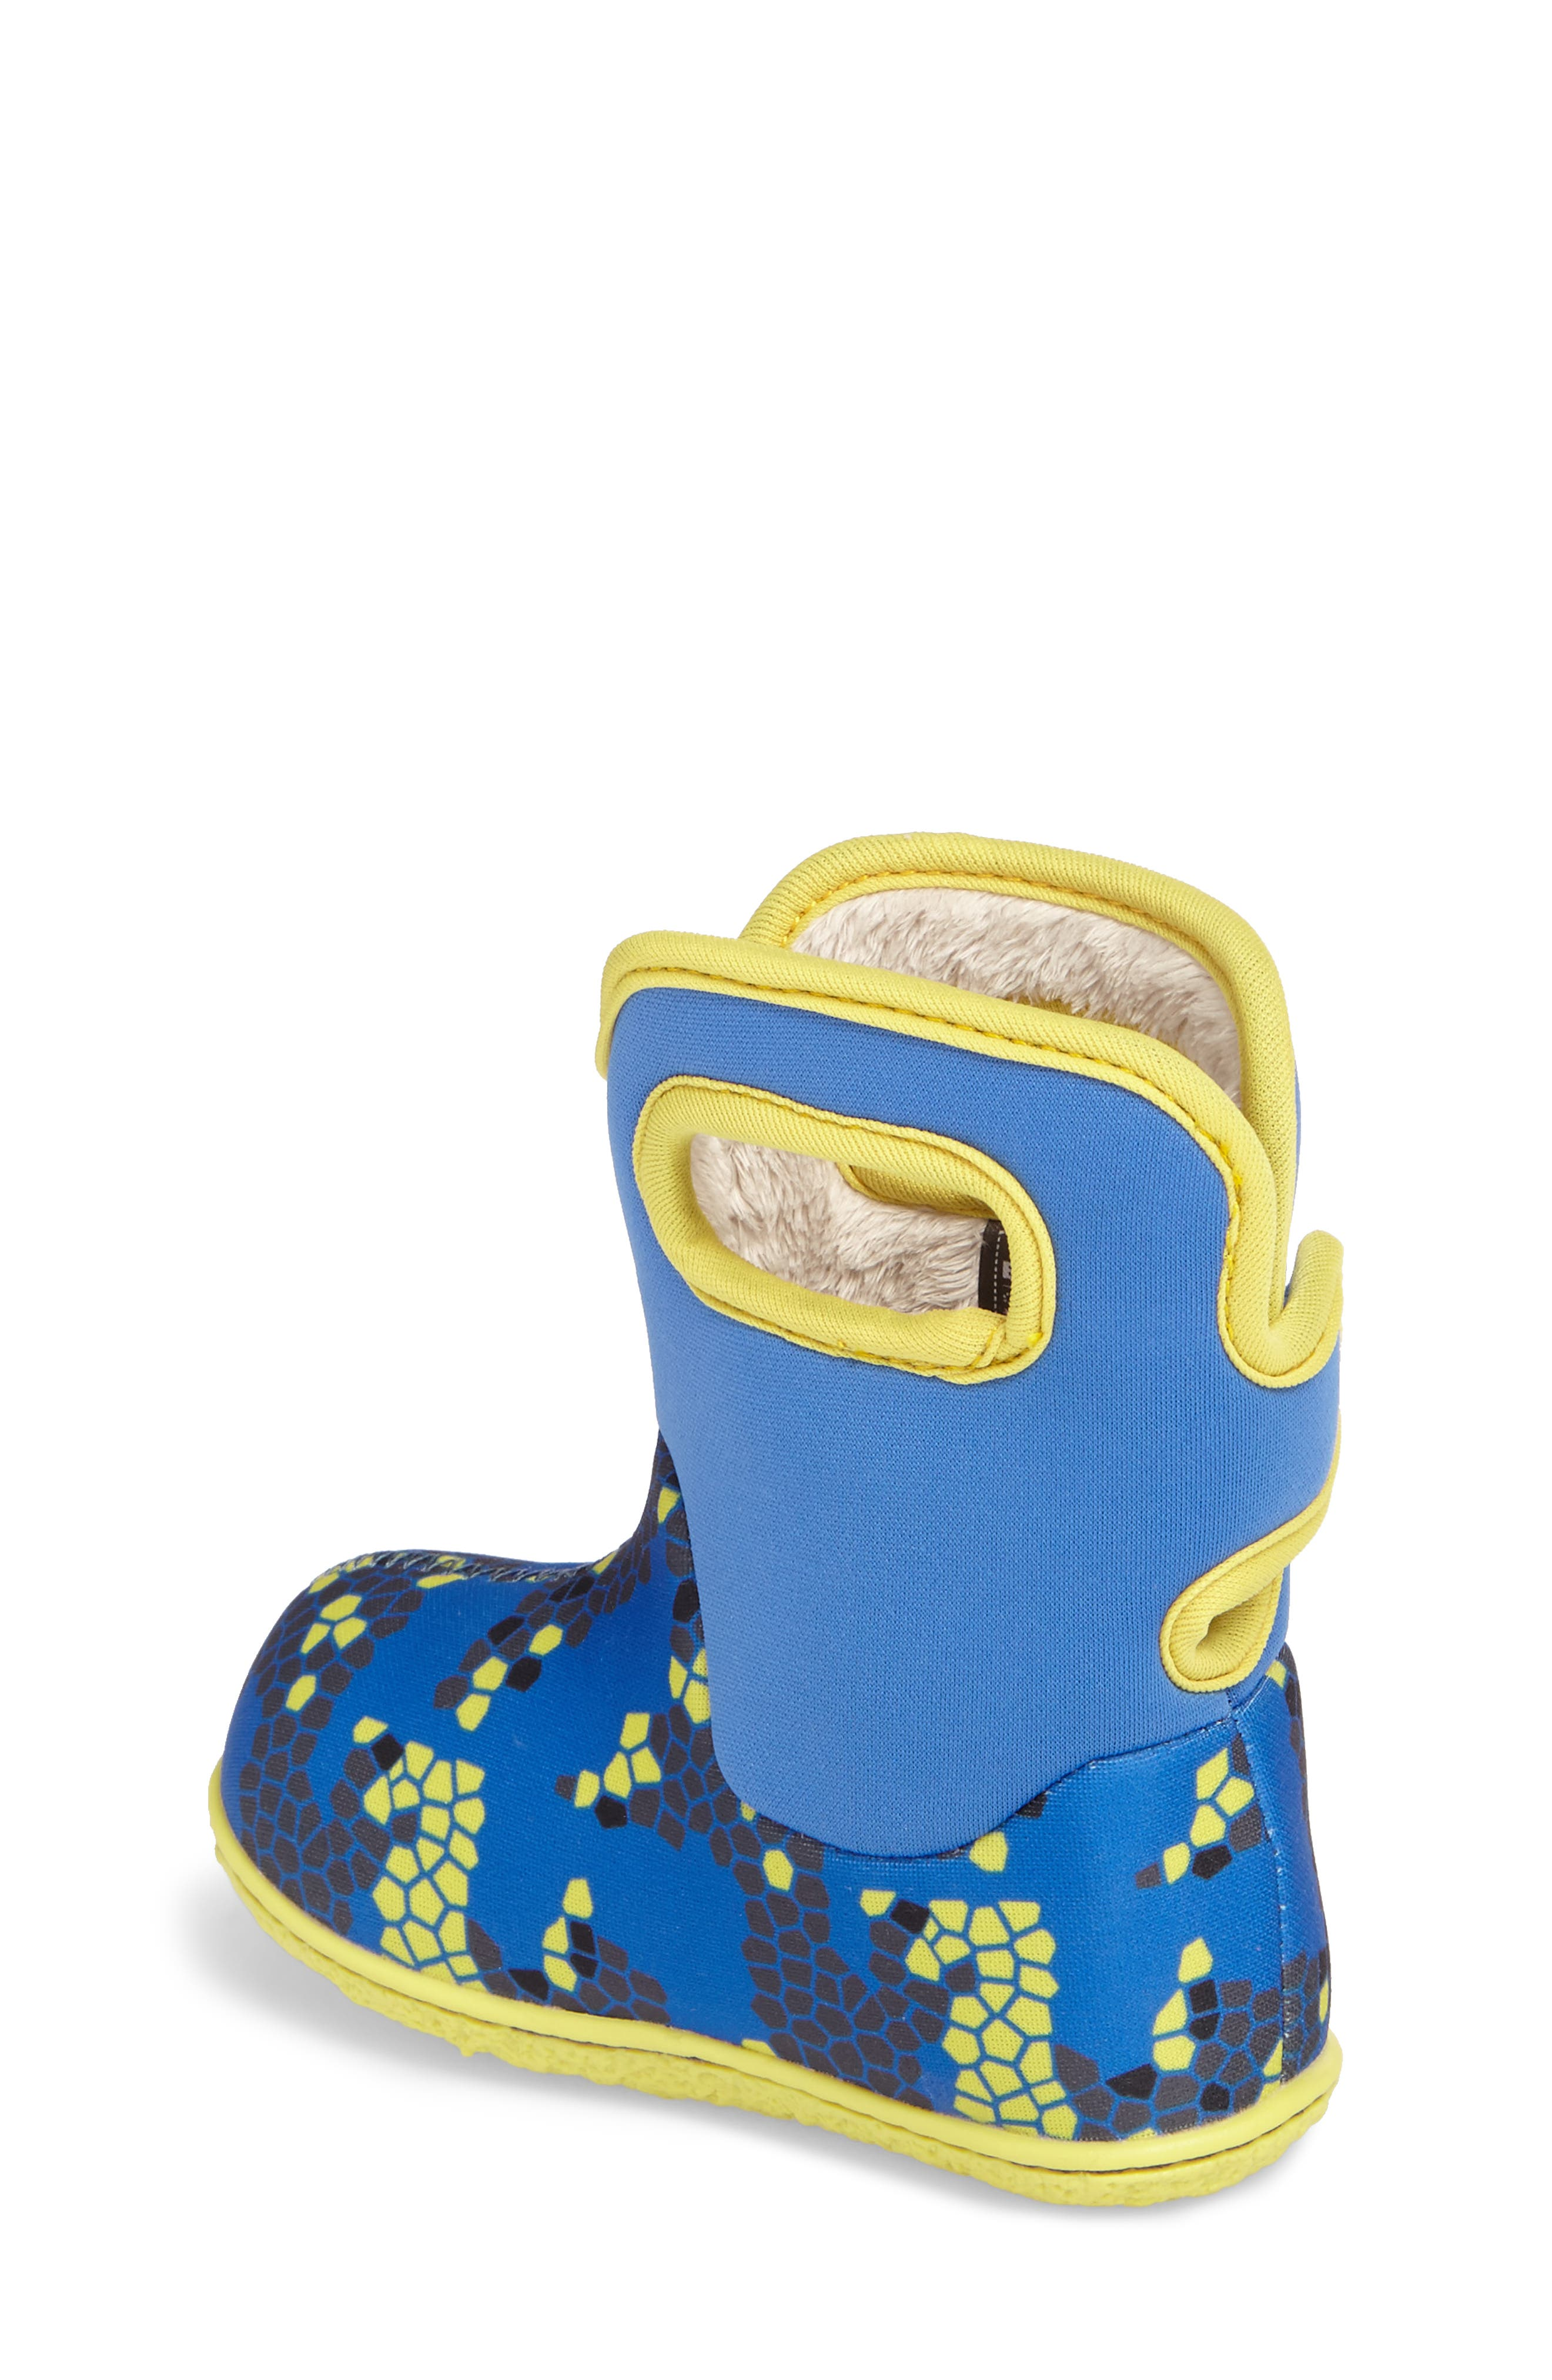 Alternate Image 2  - Bogs Baby Bogs Classic Axel Washable Insulated Waterproof Boot (Baby, Walker & Toddler)